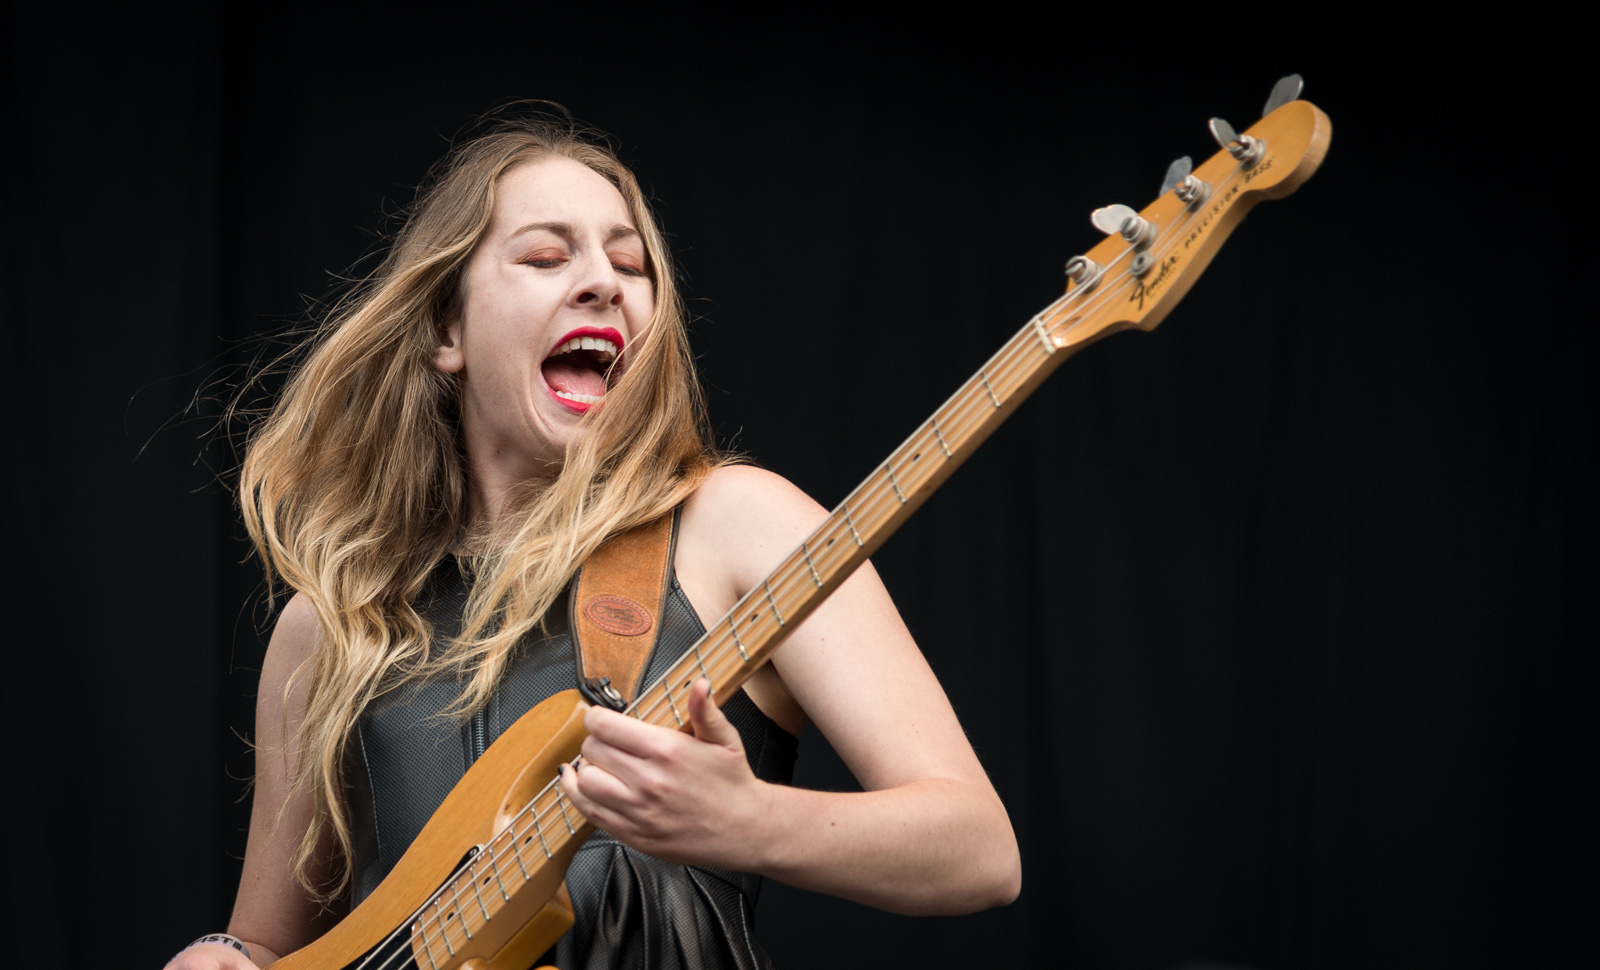 https://i2.wp.com/upload.wikimedia.org/wikipedia/commons/8/8e/Haim_at_%C3%98yafestivalen_2013.jpg